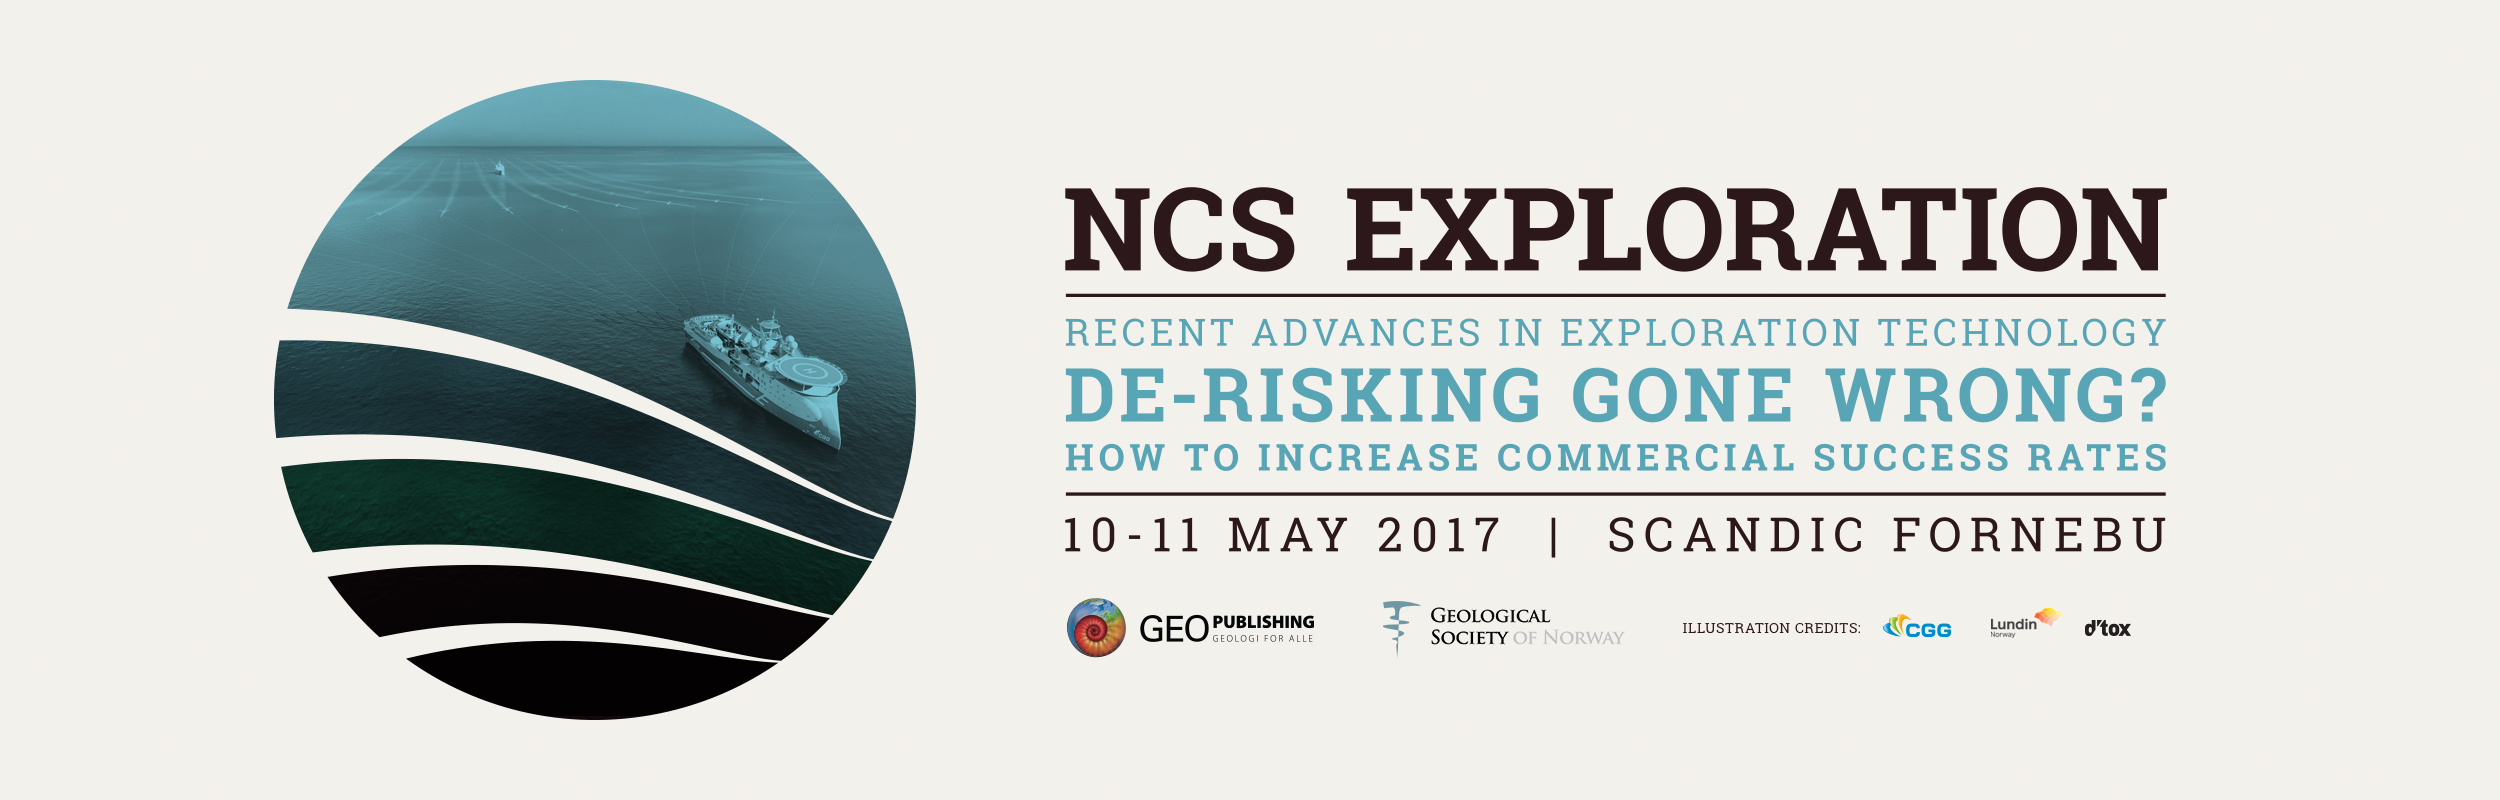 NCS Exploration - Recent Advances in Exploration Technology. De-risking gone wrong? How to increase commercial success rates.